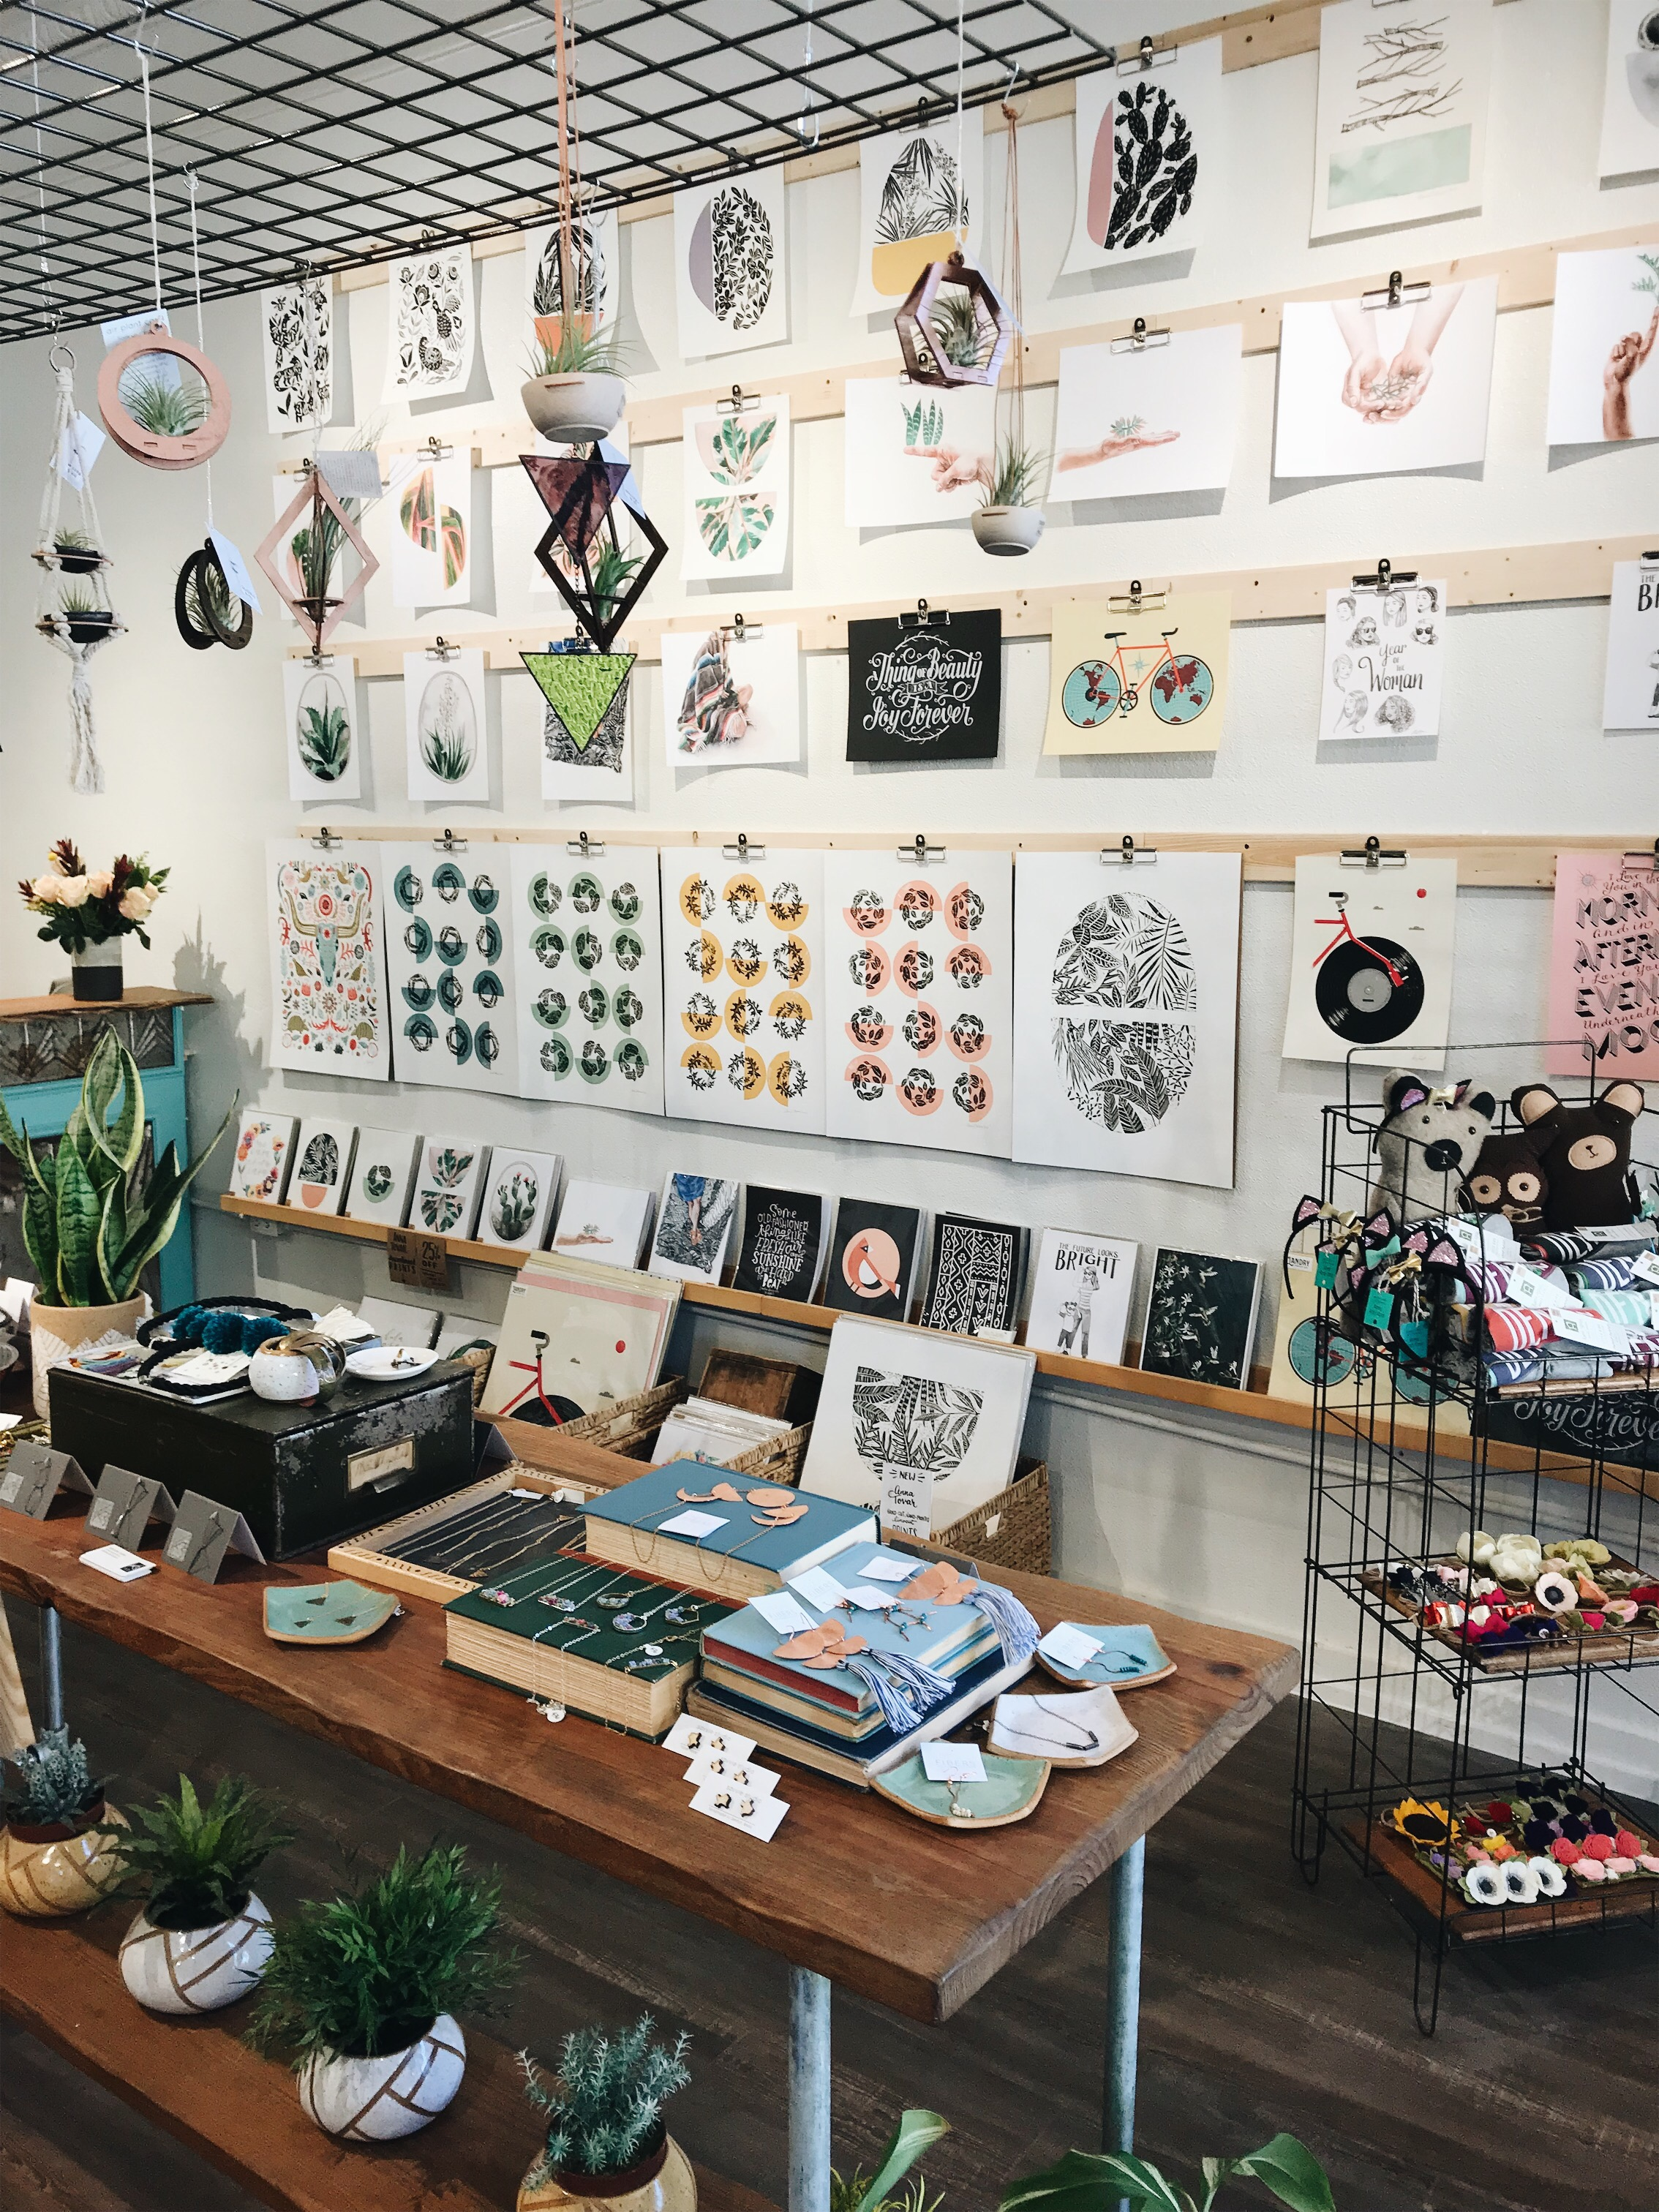 Handmade crafts on display at The DIME Store